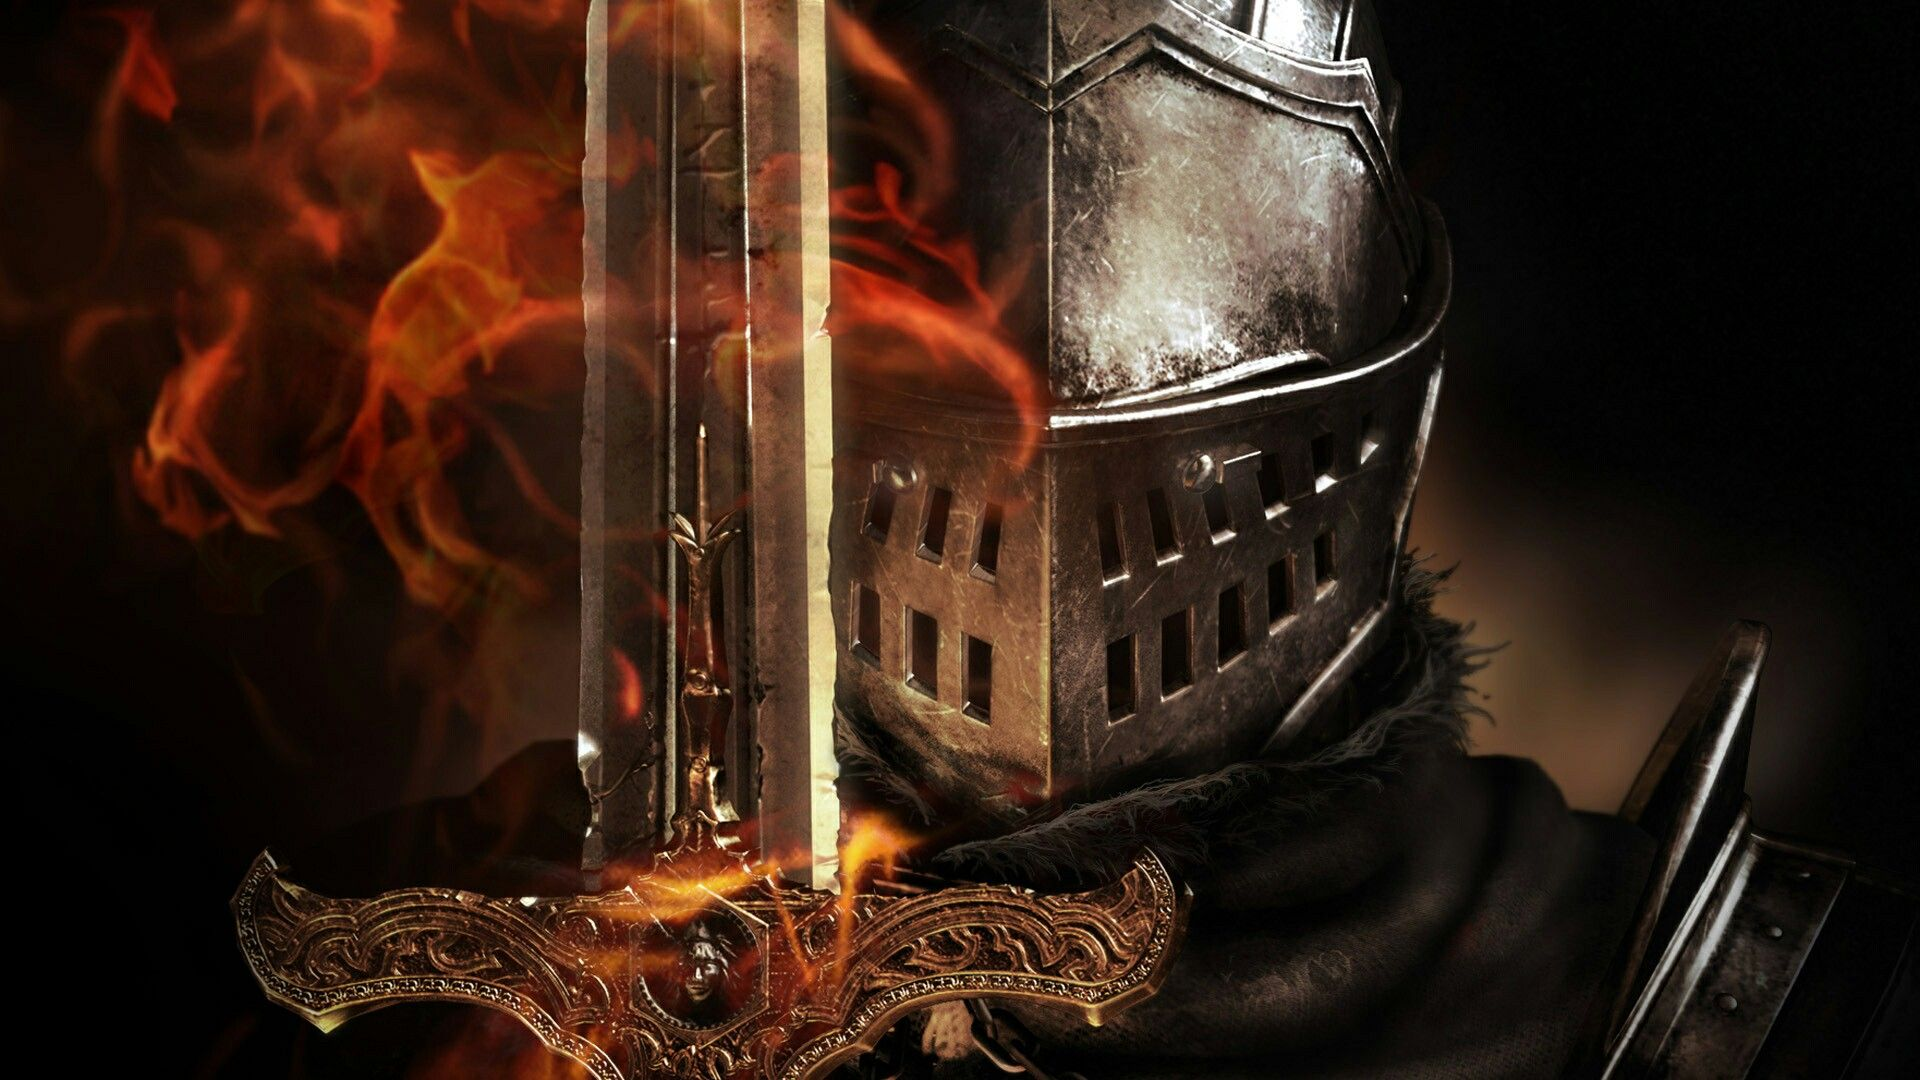 Knight Sword Wallpaper Hd Resolution Dark Souls Wallpaper Dark Souls Warriors Wallpaper